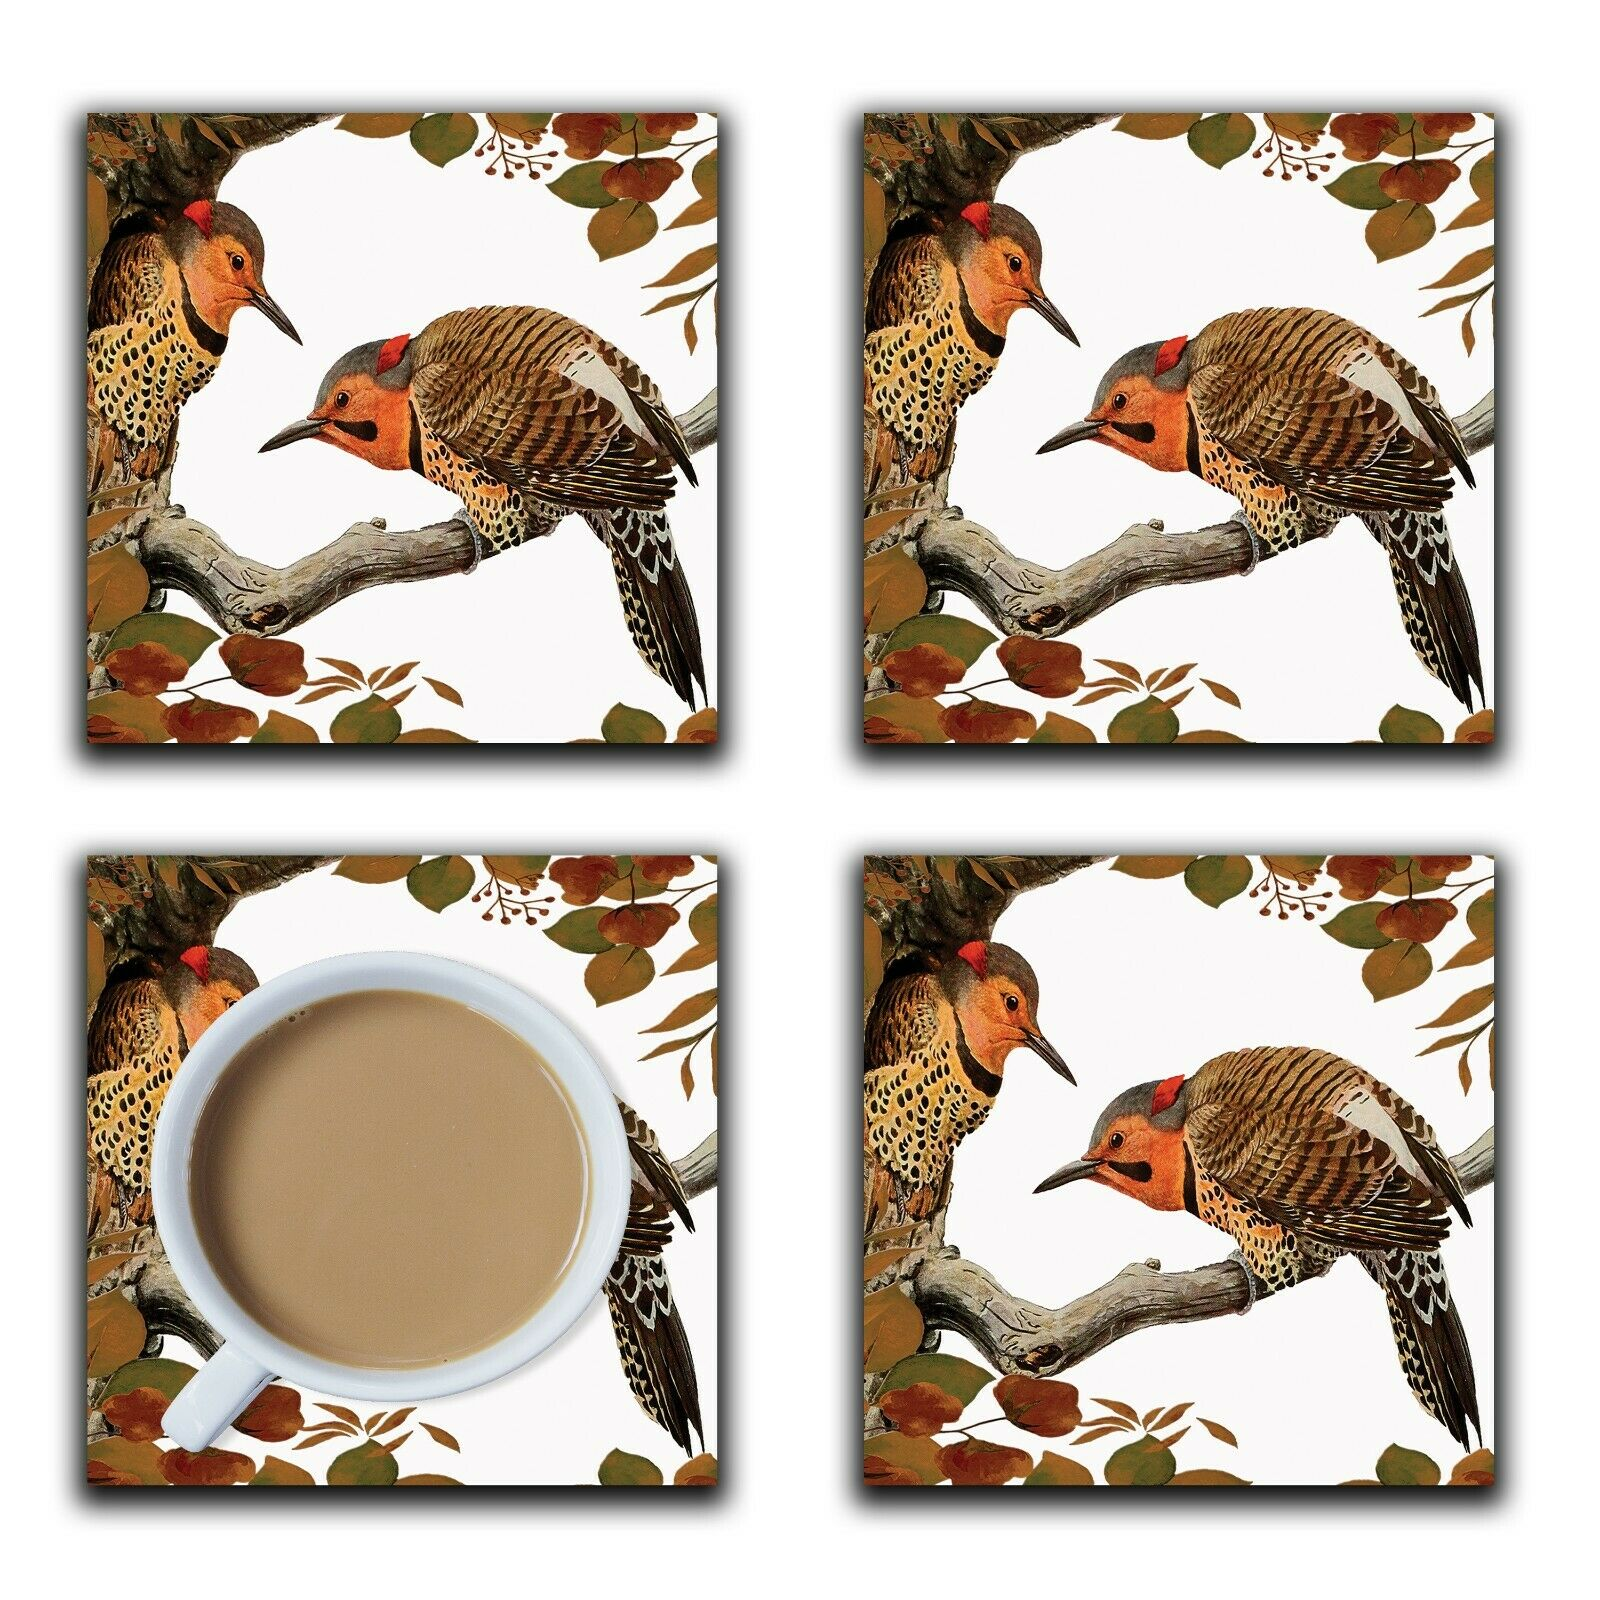 Embossi Printed Northern Flicker Bird, wood or ceramic tile, set of 4 Coasters